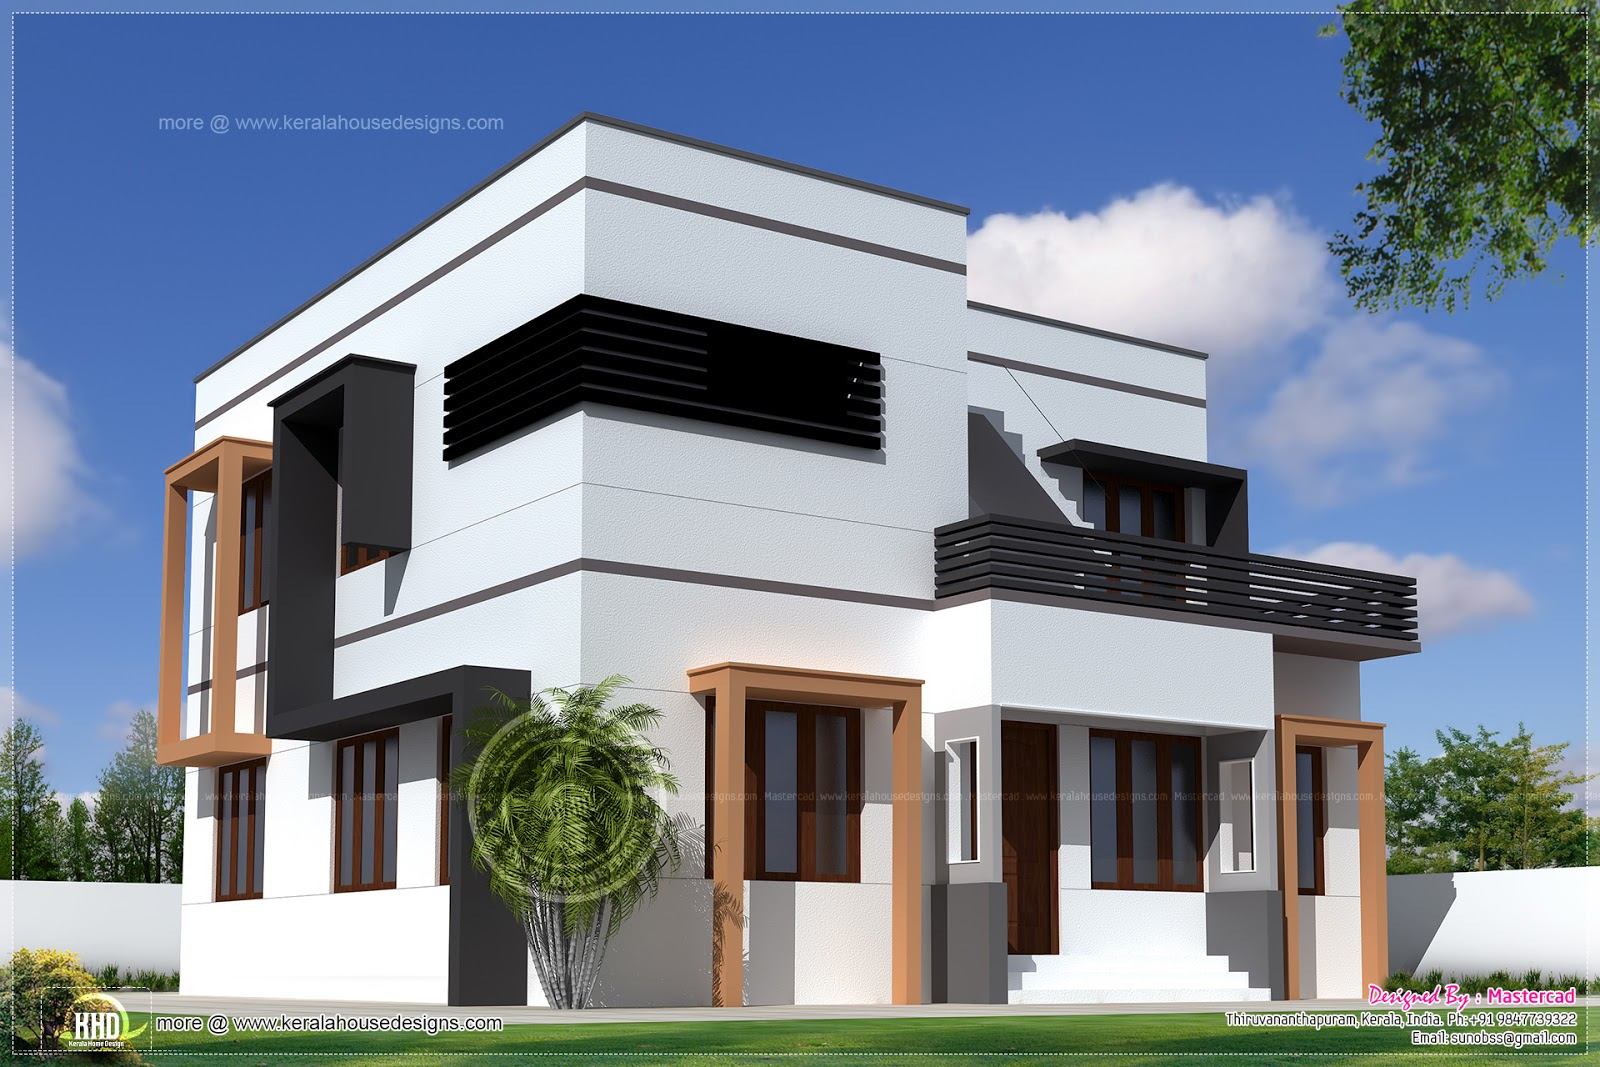 1627 square feet modern villa exterior home kerala plans for External design house